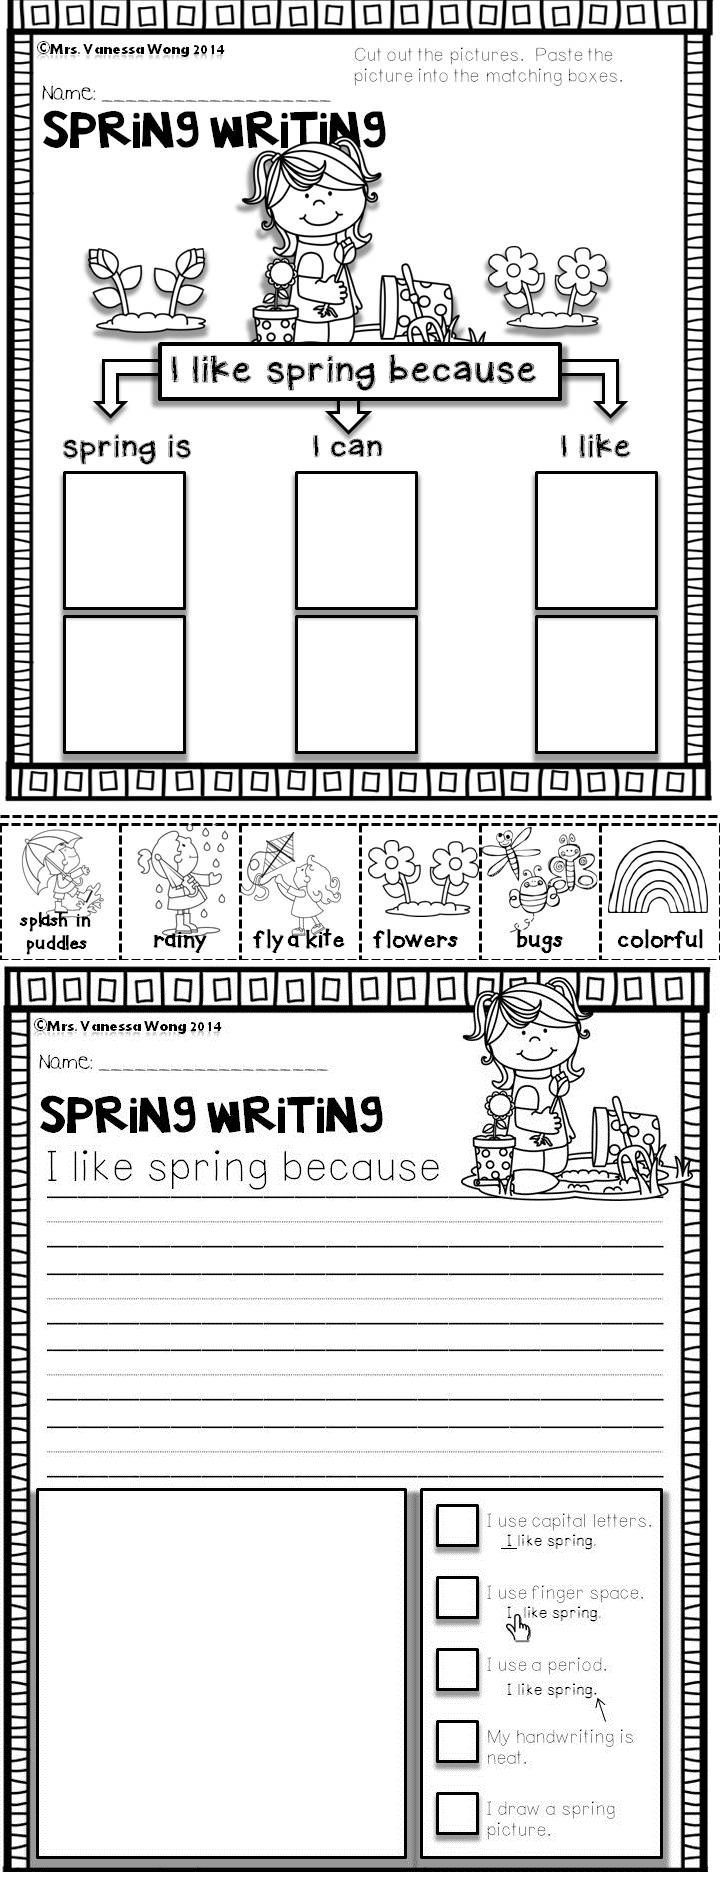 1309 best Kindergarten images on Pinterest | School, Day care and ...